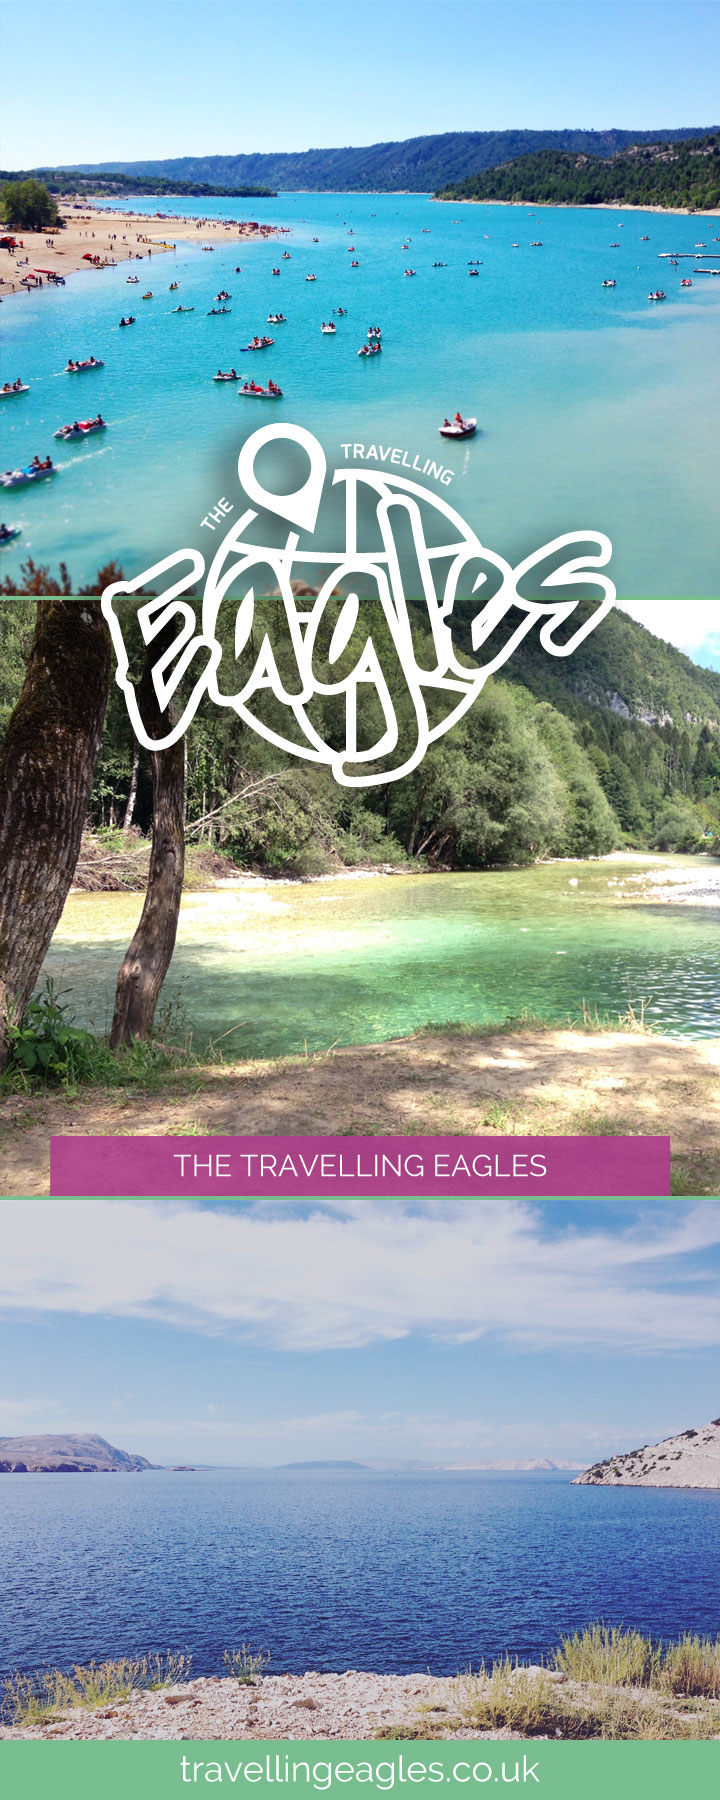 Slovenia - The Travelling Eagles